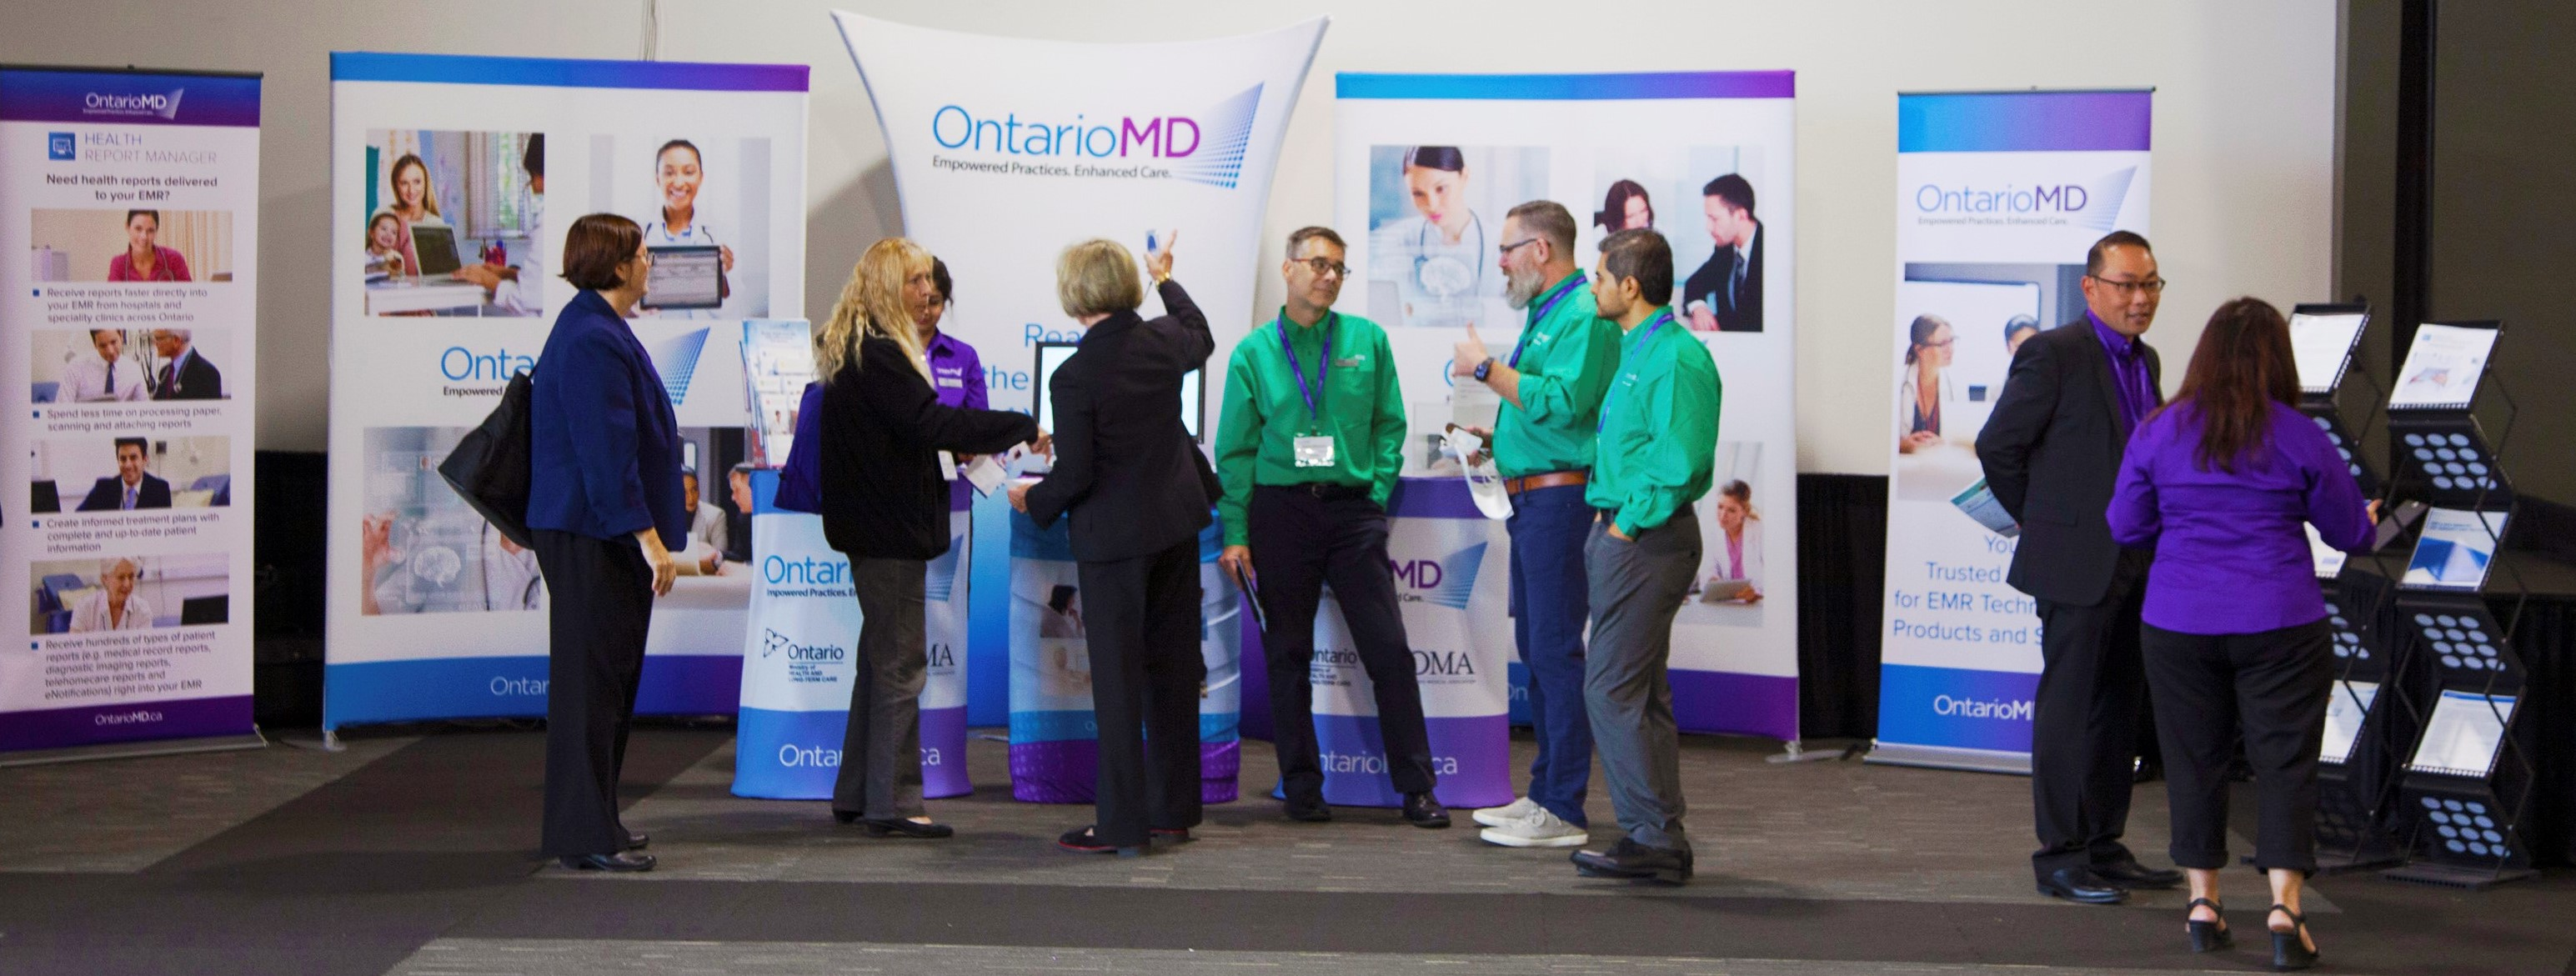 OntarioMD Booth